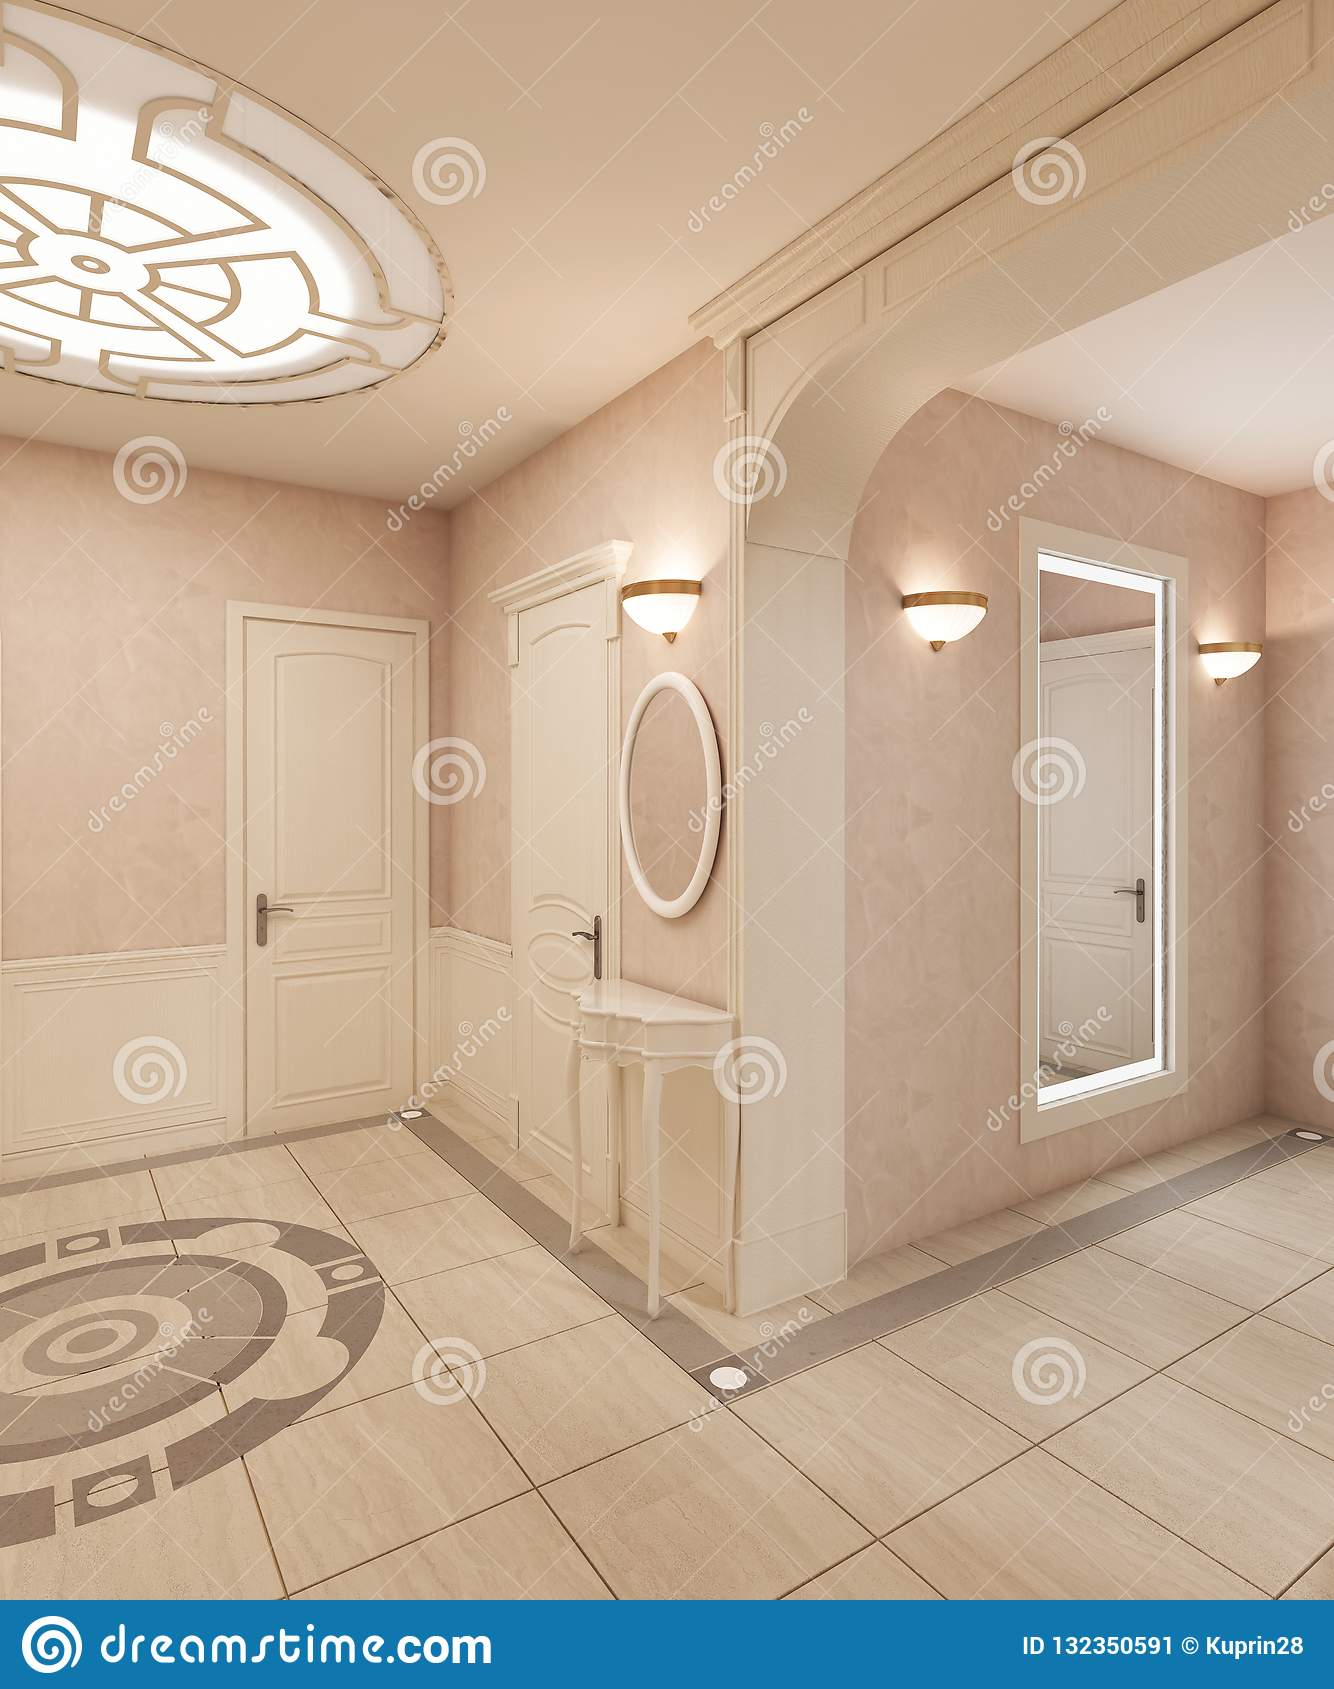 The Foyer Is In Classical Style With A Marble Floor And Beige Wooden Squares On The Walls Built In Ceiling Light Stock Illustration Illustration Of Elegance Entrance 132350591